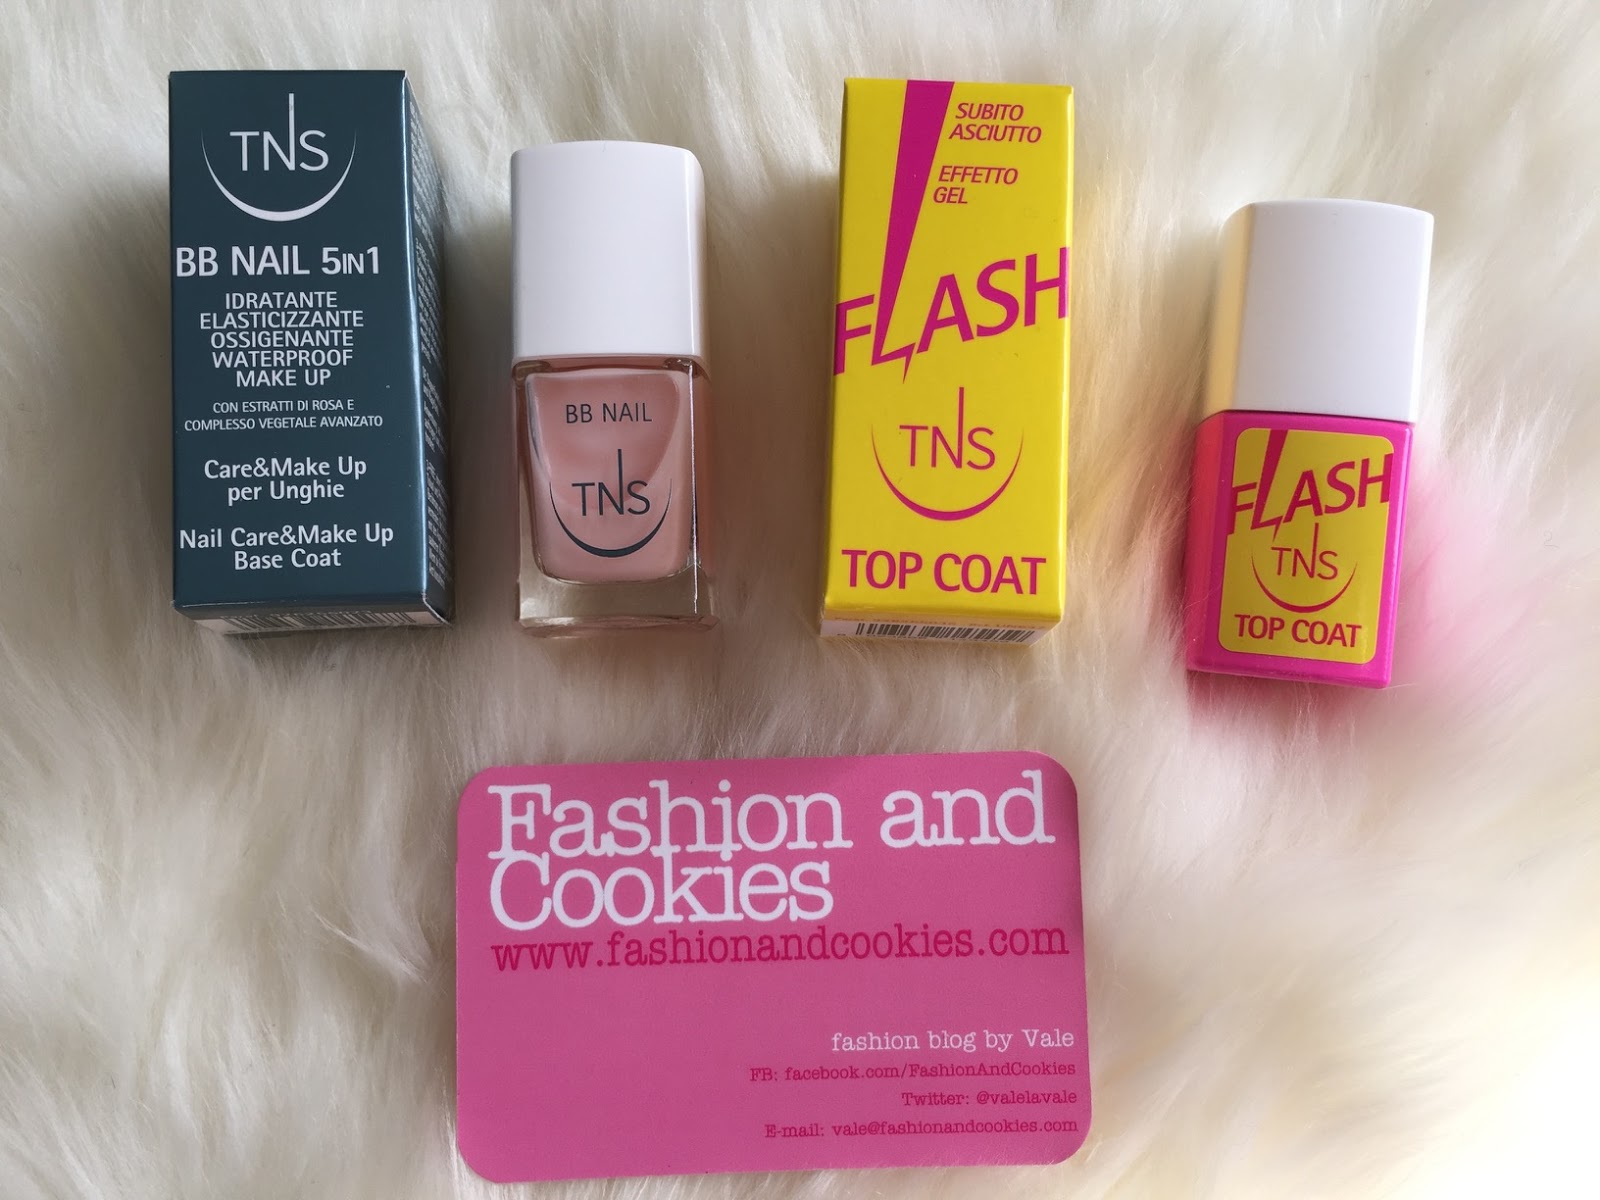 TNS cosmetics bb nail  and flash gel top coat on Fashion and Cookies beauty blog, beauty blogger